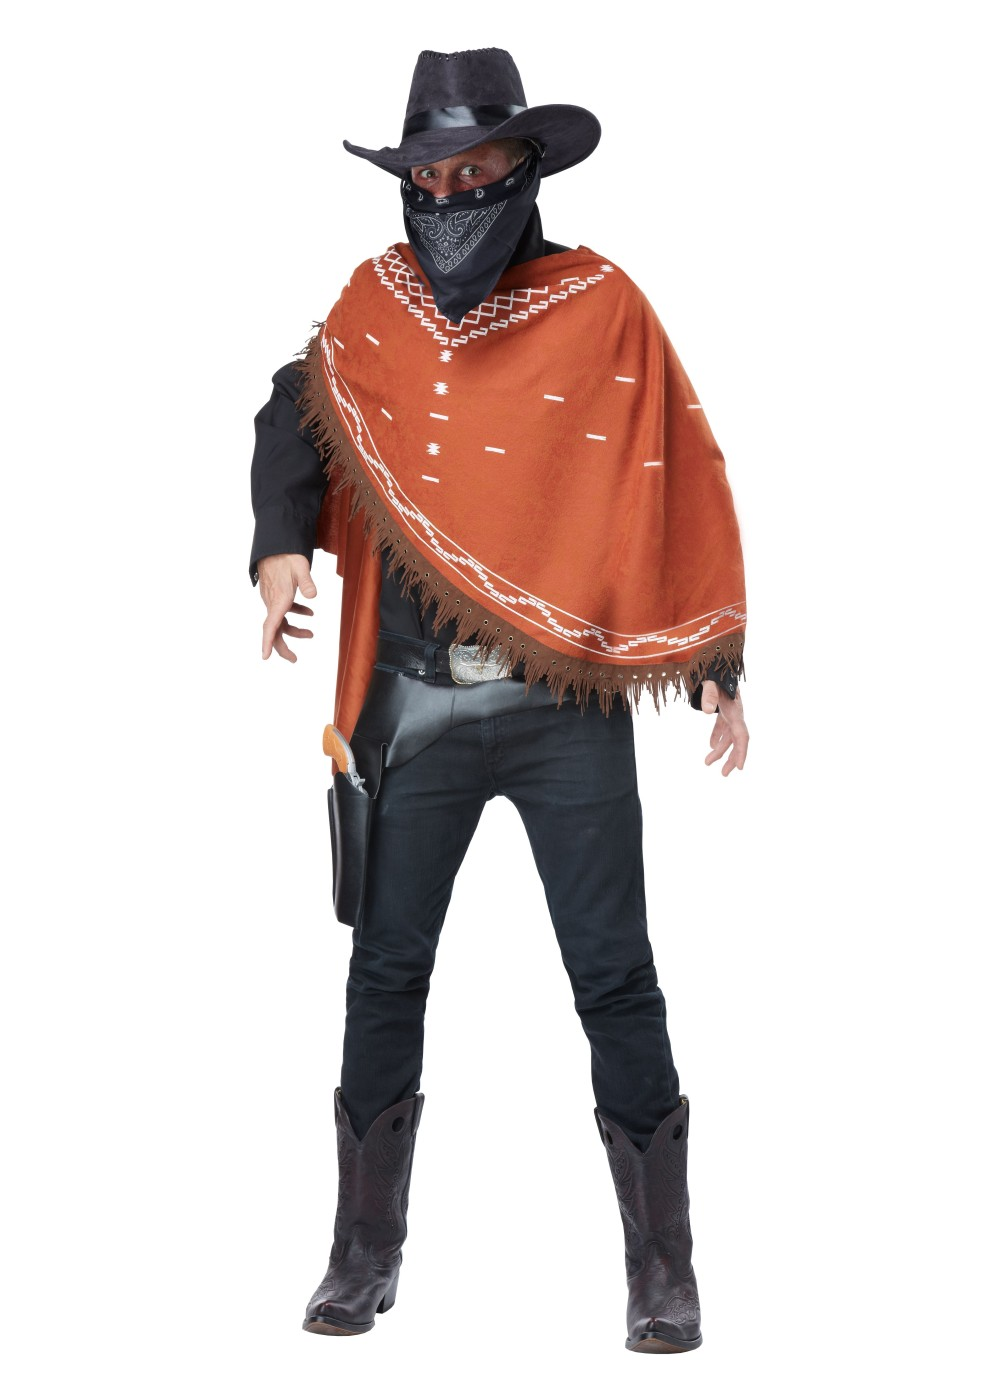 Western outlaw outfit